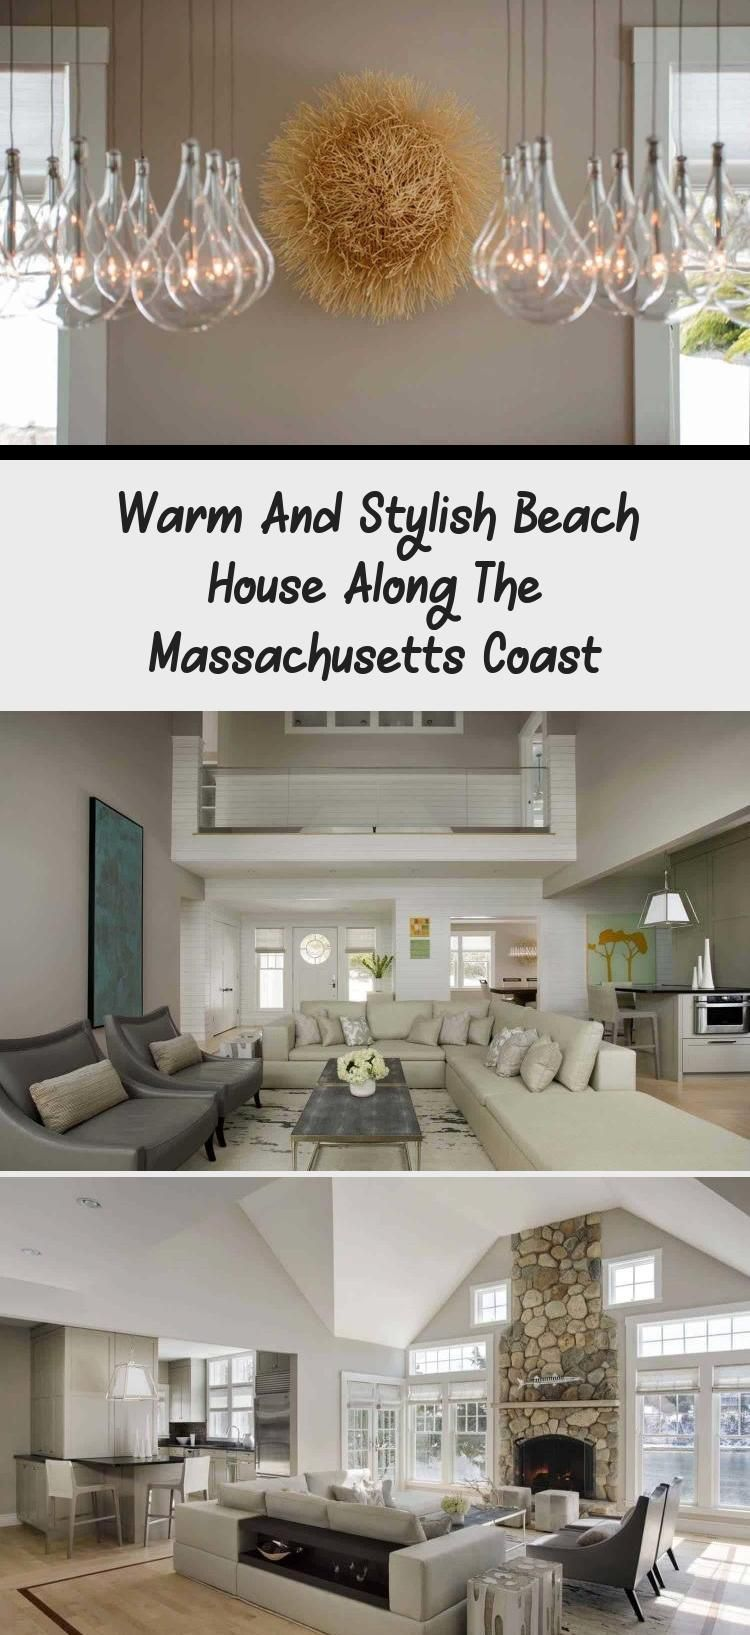 This stylish beach house family retreat was renovated by Martha's Vineyard Interior Design, located in Chatham a town in Barnstable County, Massachusetts. #Vintageinteriordesign #interiordesignInteriorismo #interiordesignArt #interiordesignStudio #interiordesignPresentation